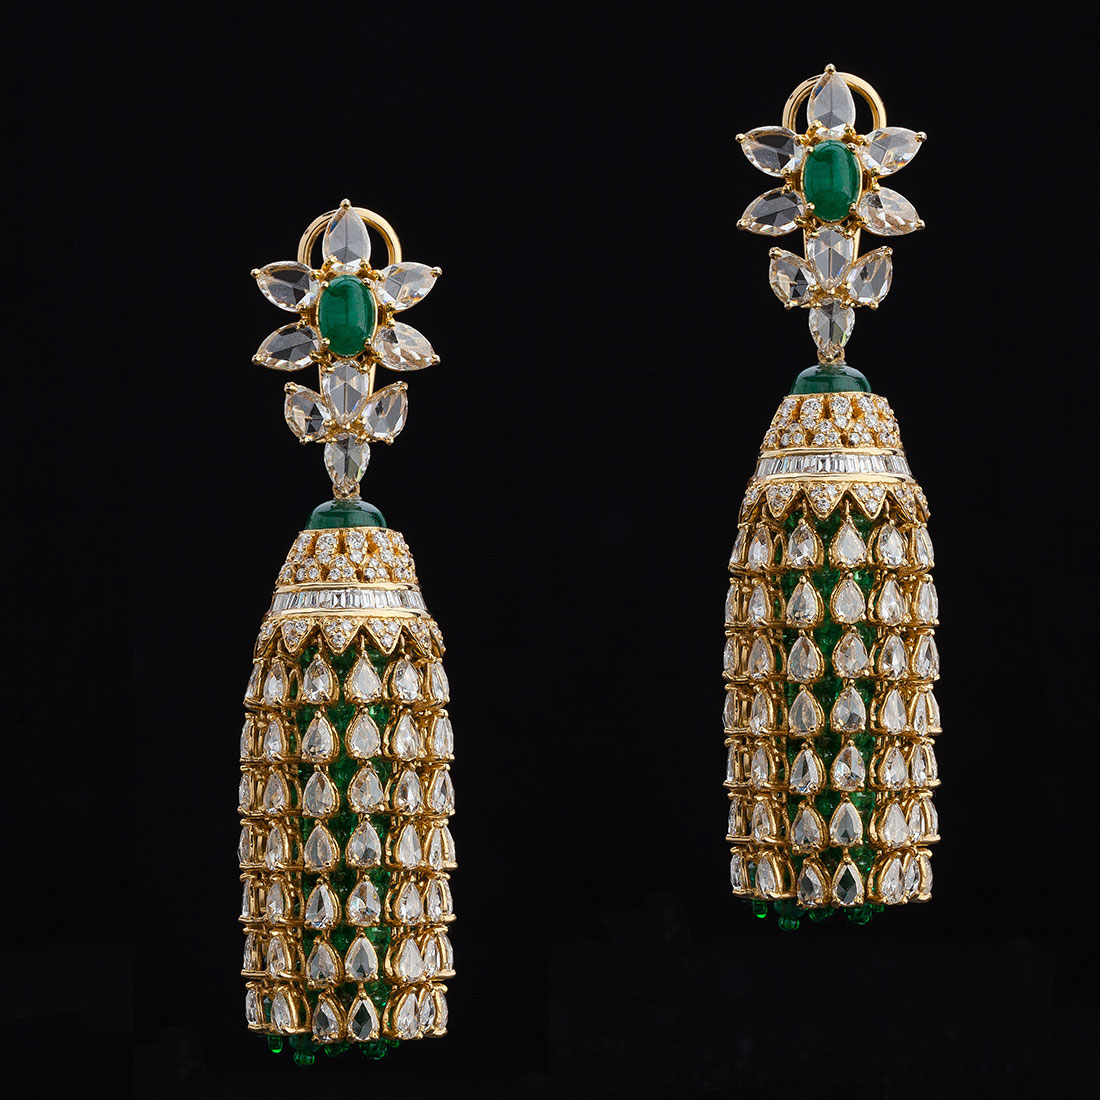 Dare to be different with these unique Emerald Bead and Rosecut Jhumkis set in yellow gold.